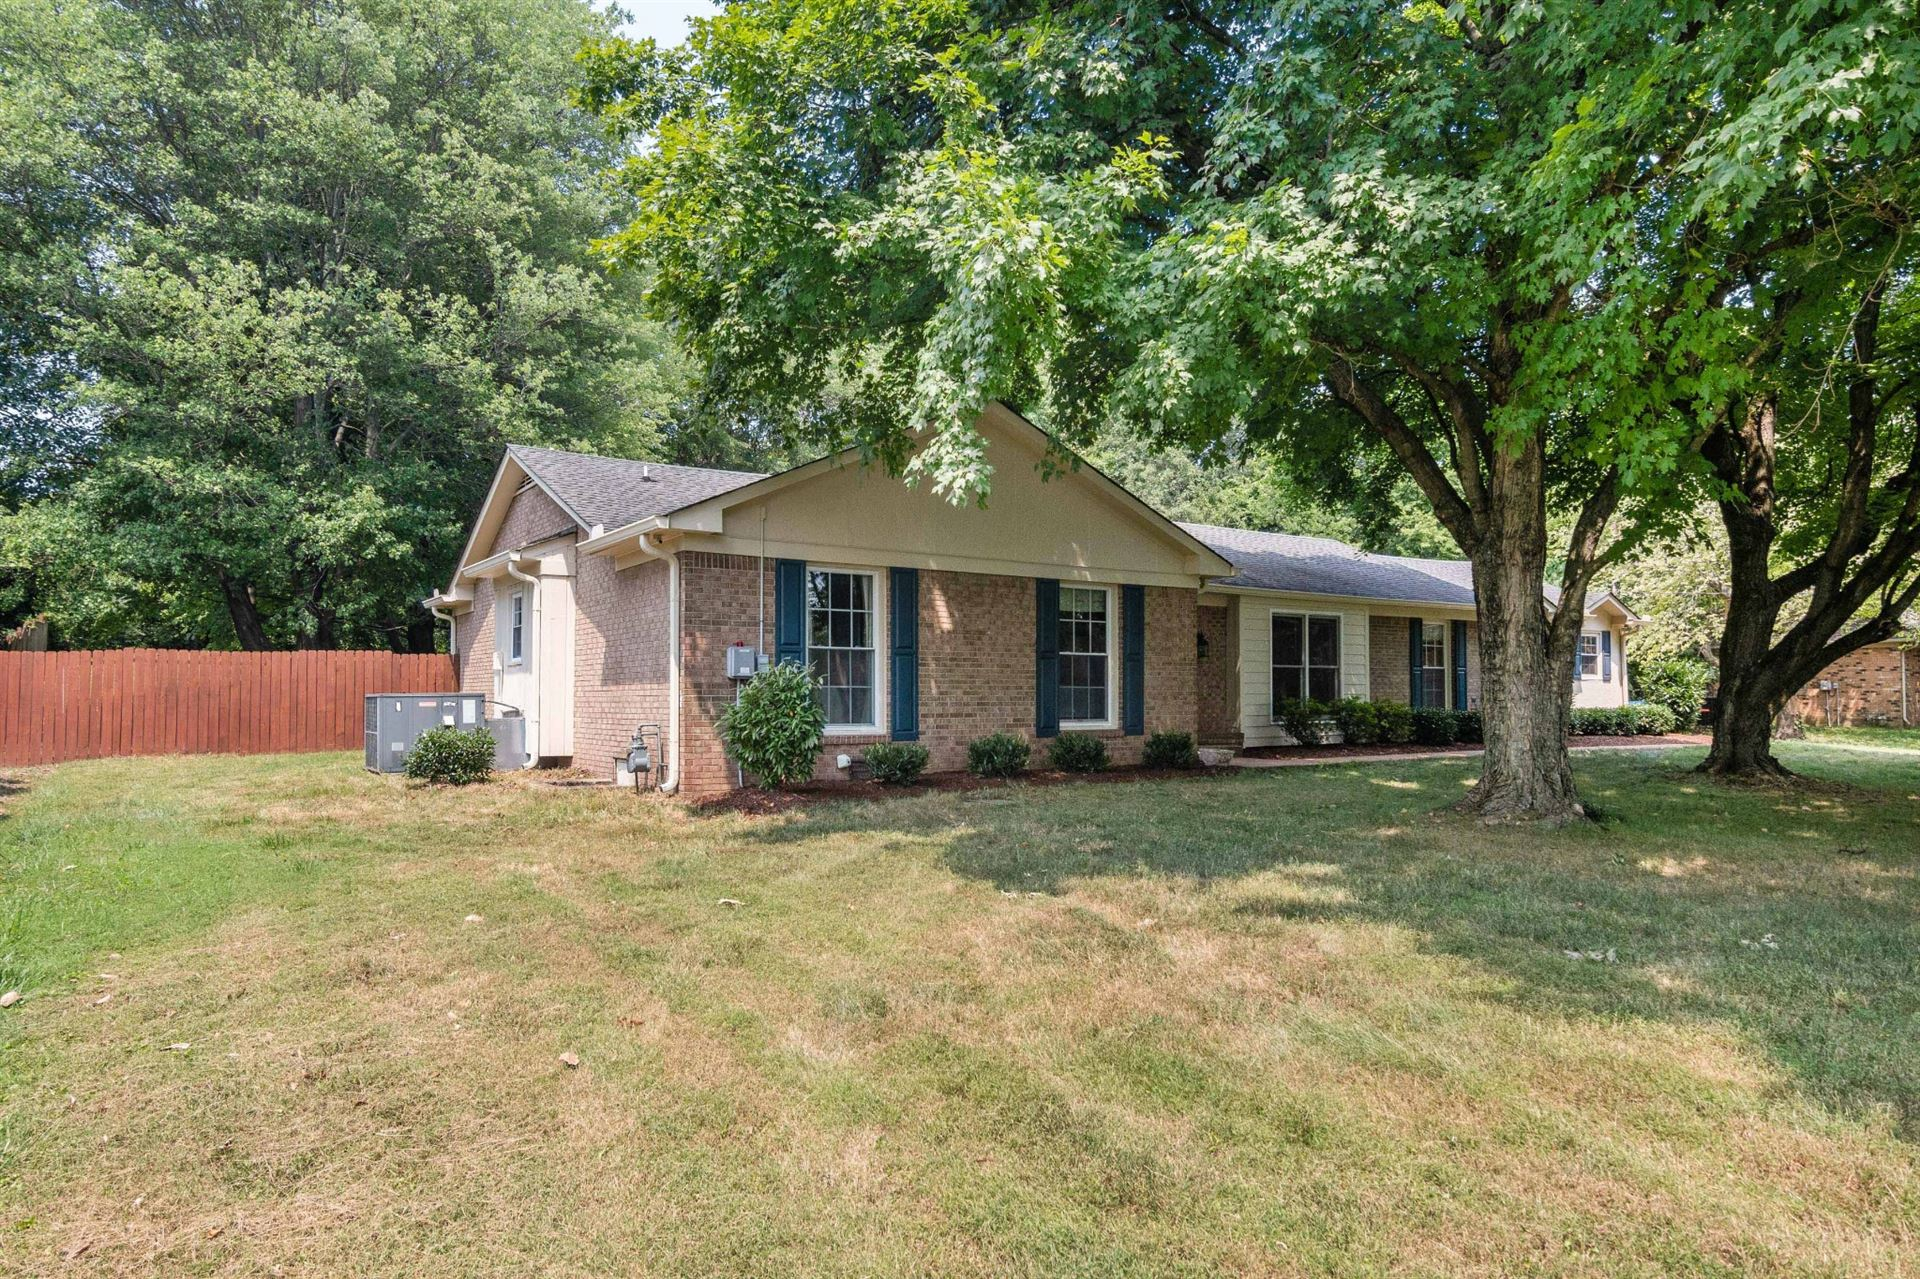 Photo of 8116 Moores Ln, Brentwood, TN 37027 (MLS # 2276756)